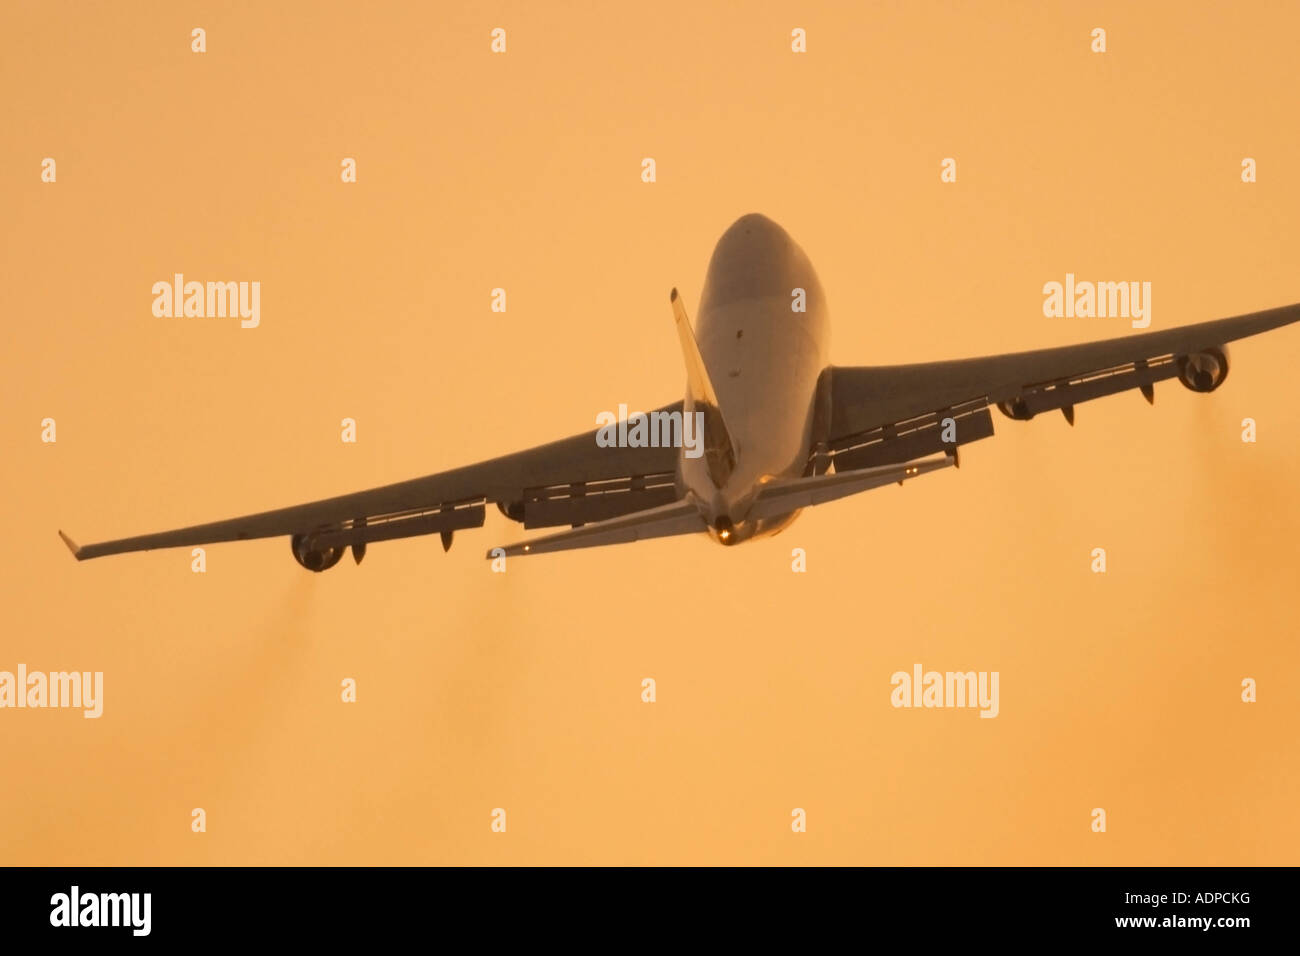 Cargo freight aircraft in flight - Stock Image